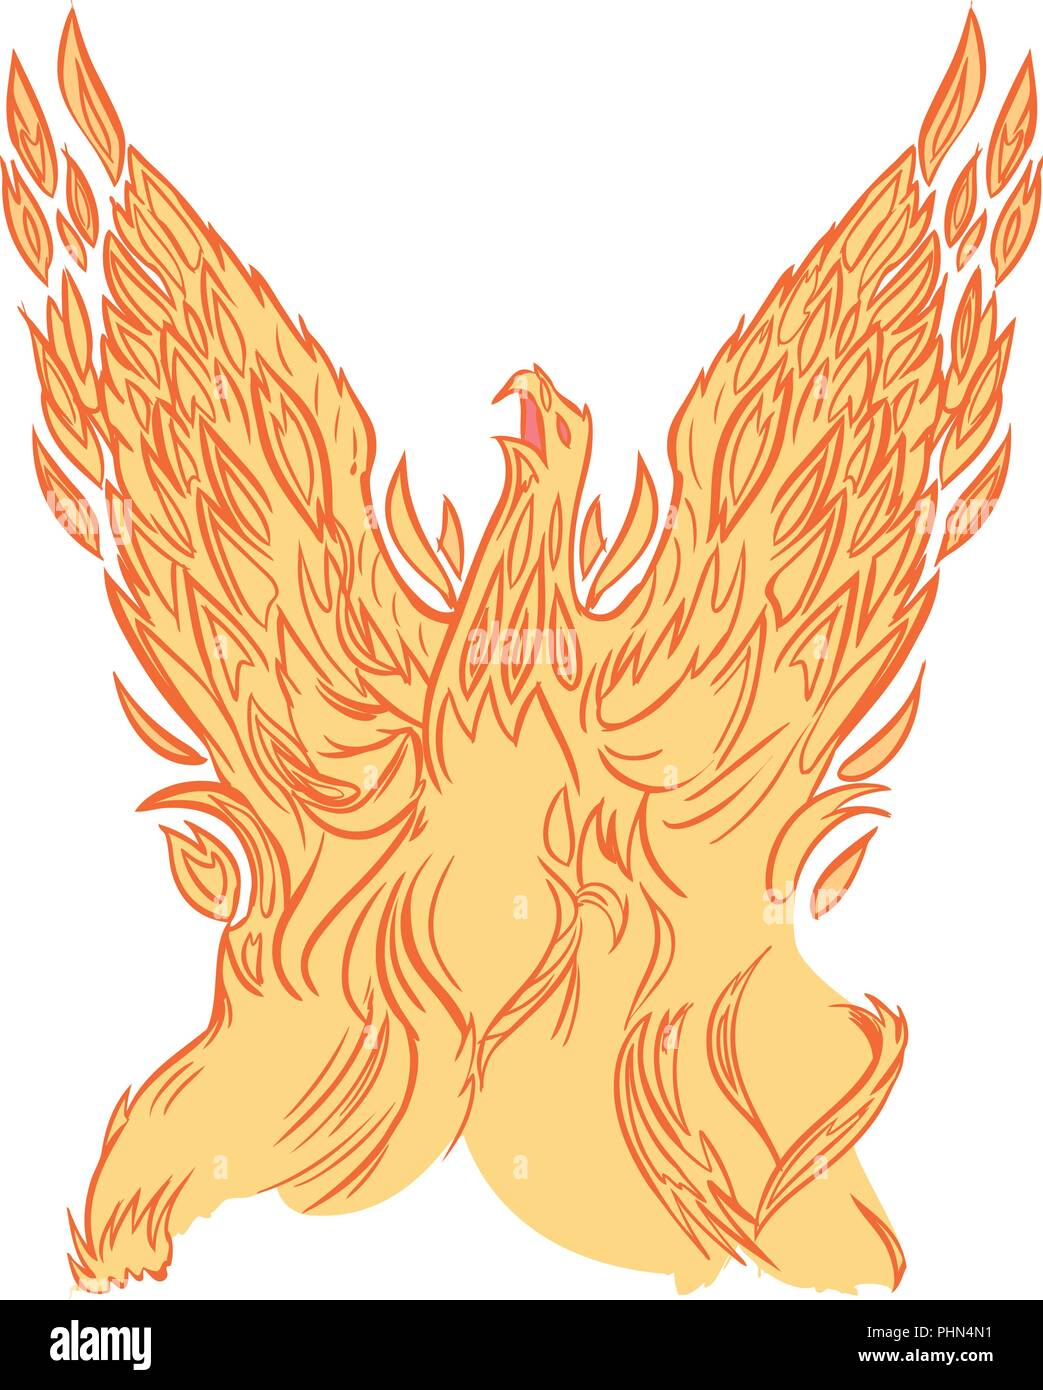 Vector clip art cartoon illustration of a phoenix or firebird made of fire or flames rising into the air with wings spread. - Stock Vector